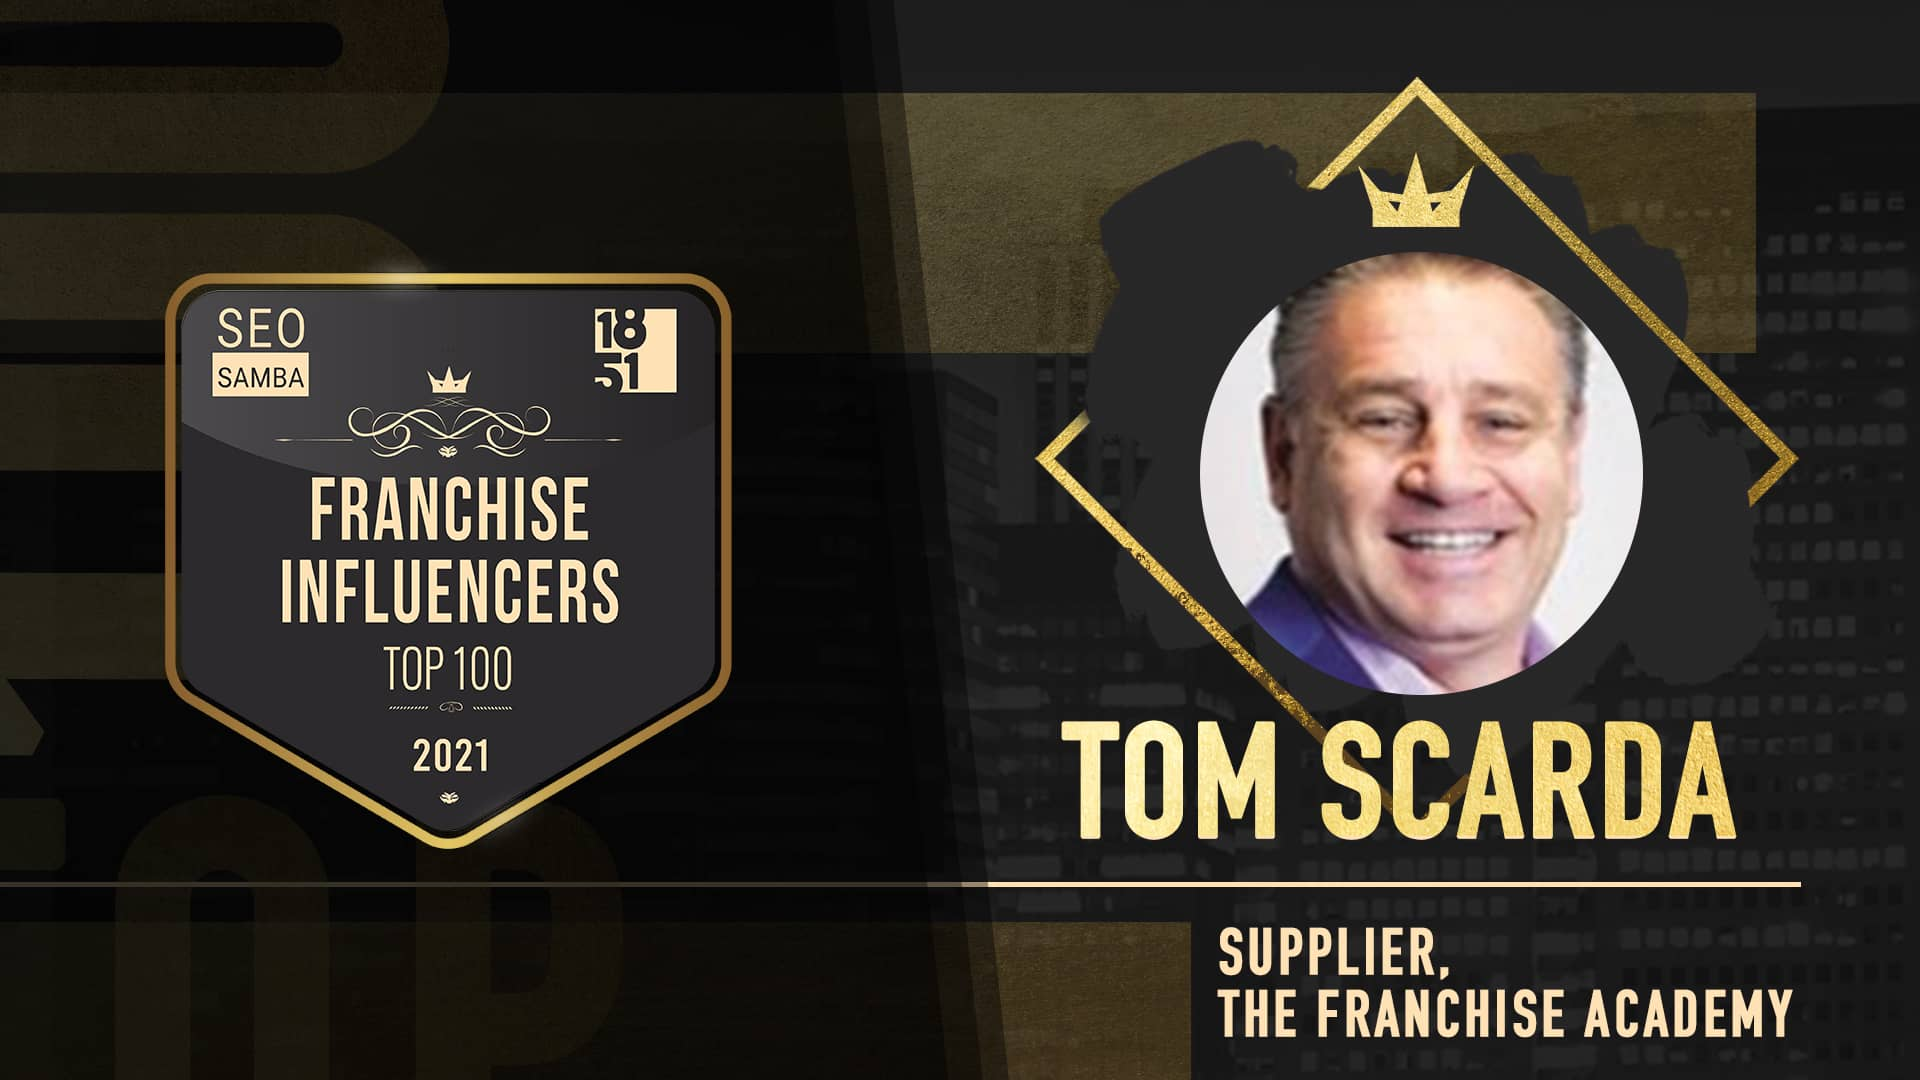 Tom Scarda - The Franchise Academy